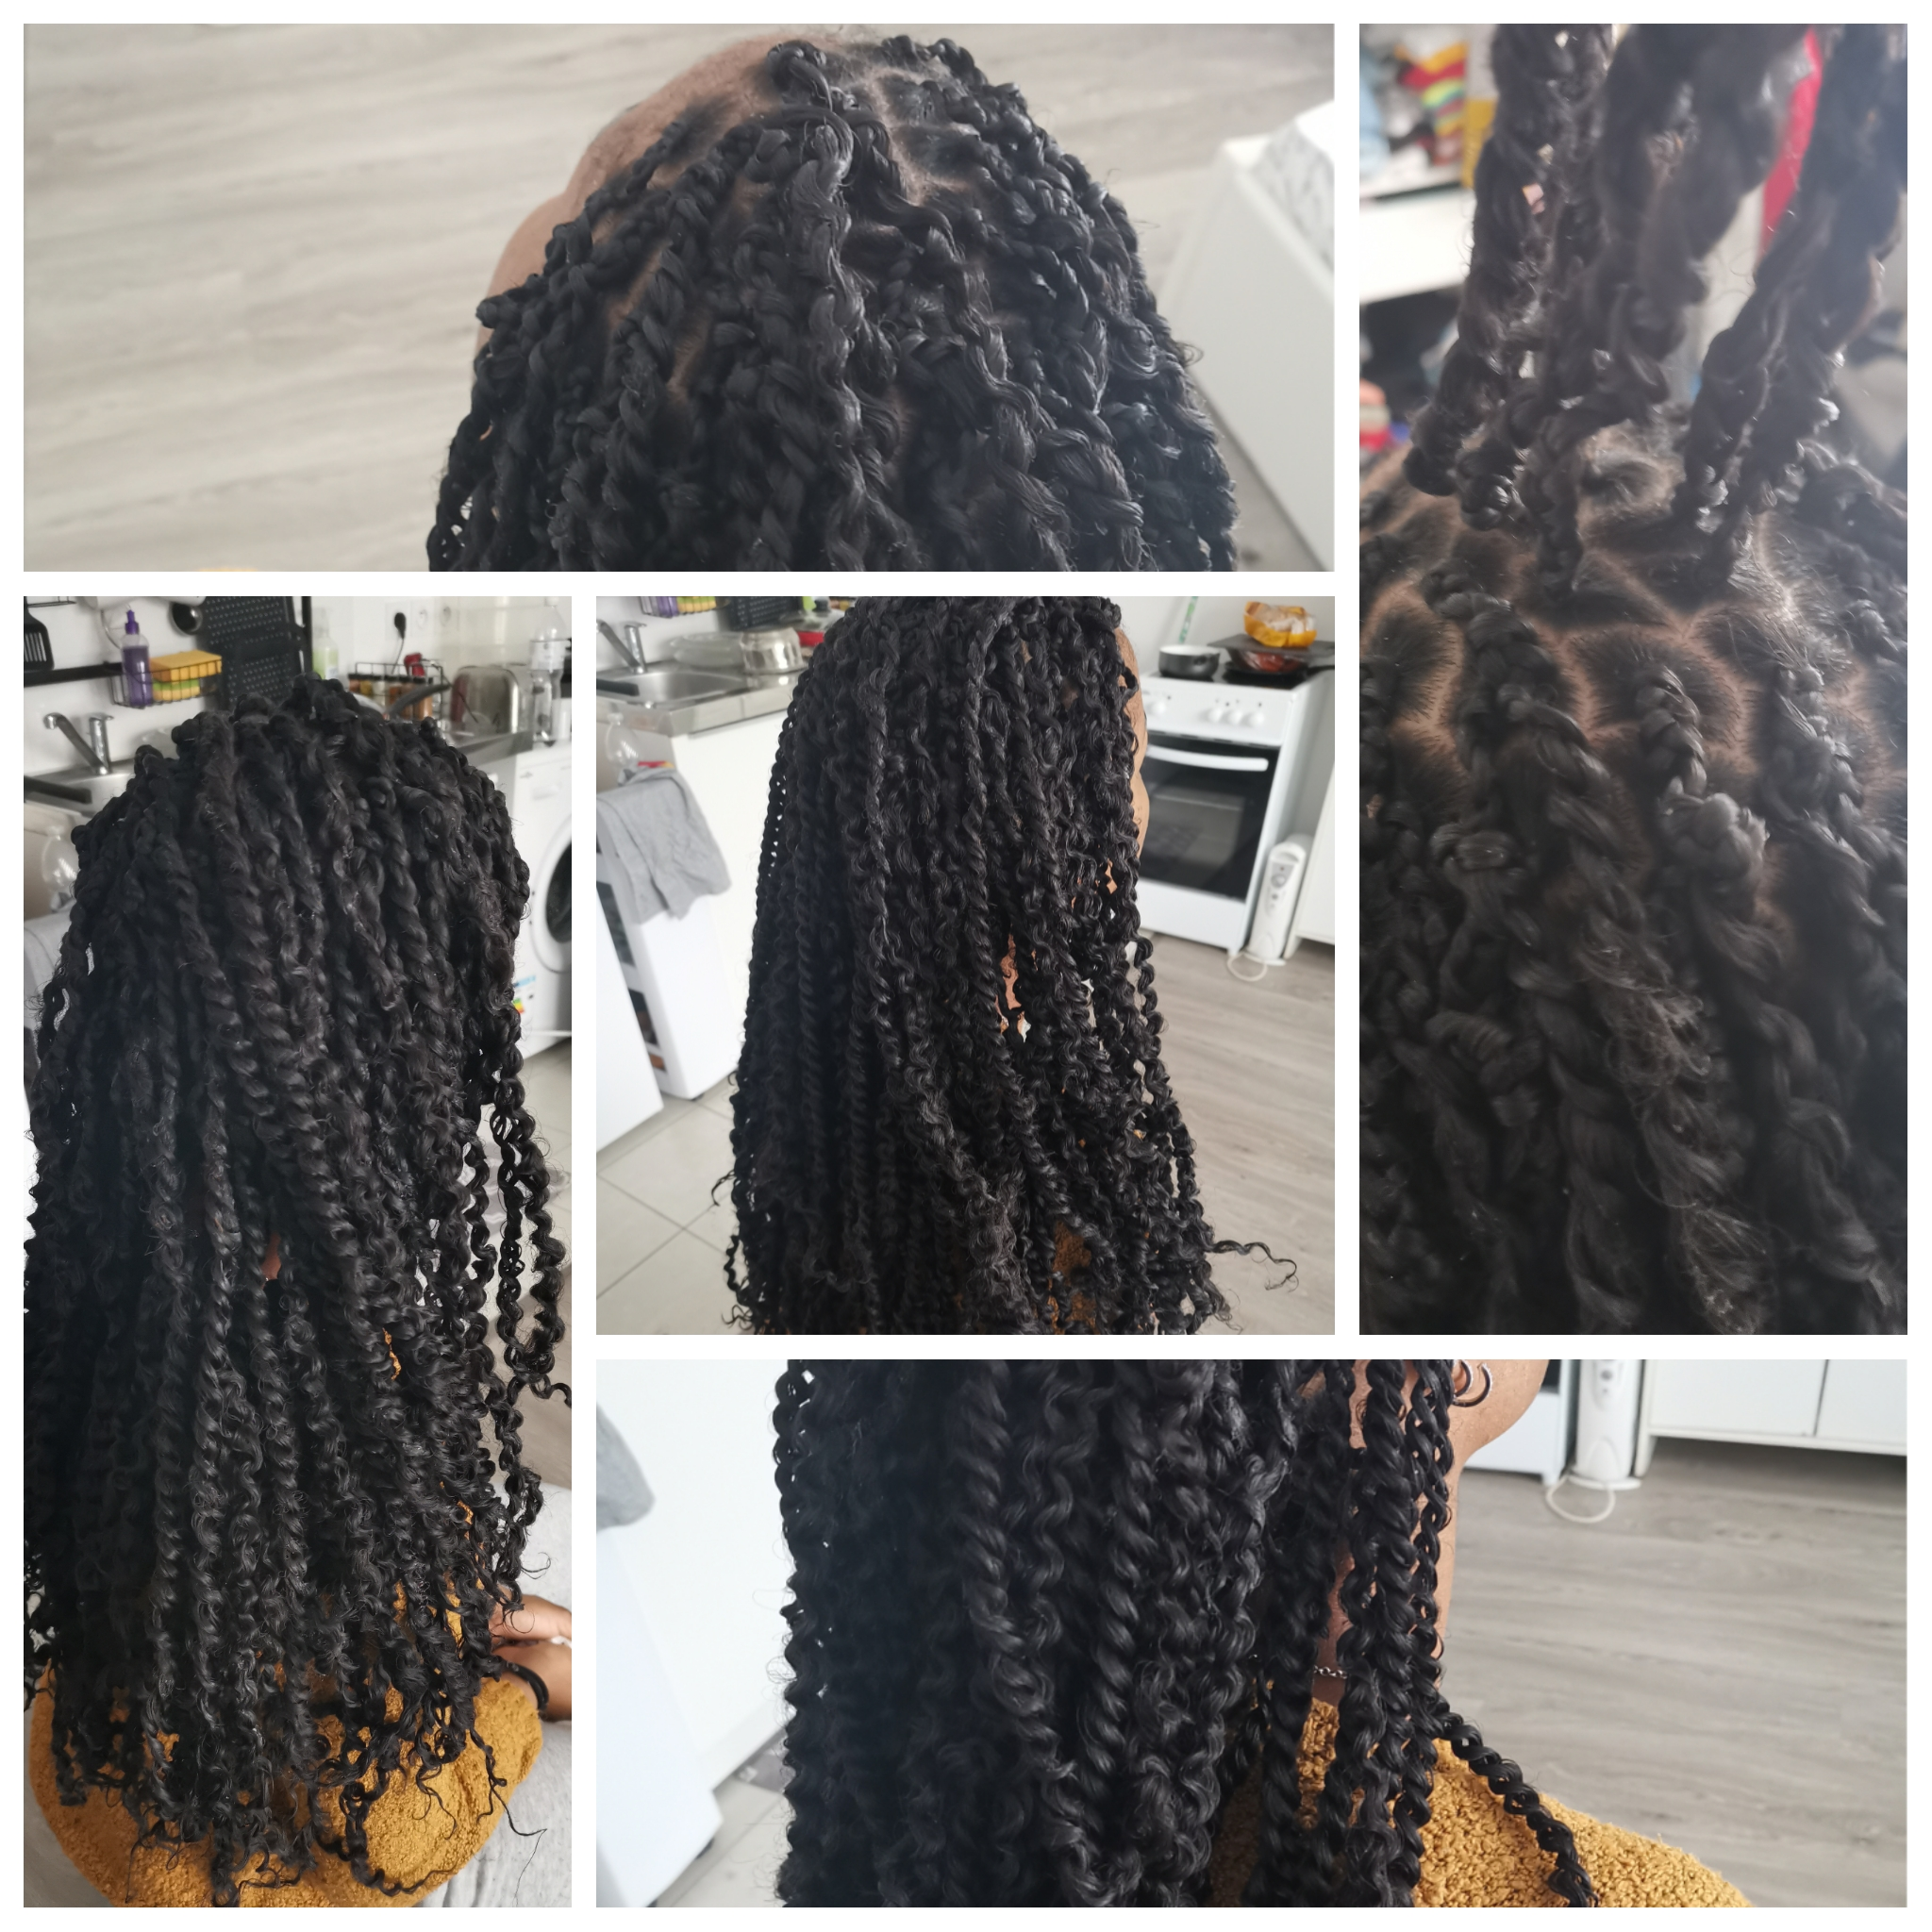 salon de coiffure afro tresse tresses box braids crochet braids vanilles tissages paris 75 77 78 91 92 93 94 95 ZGJGSFVS